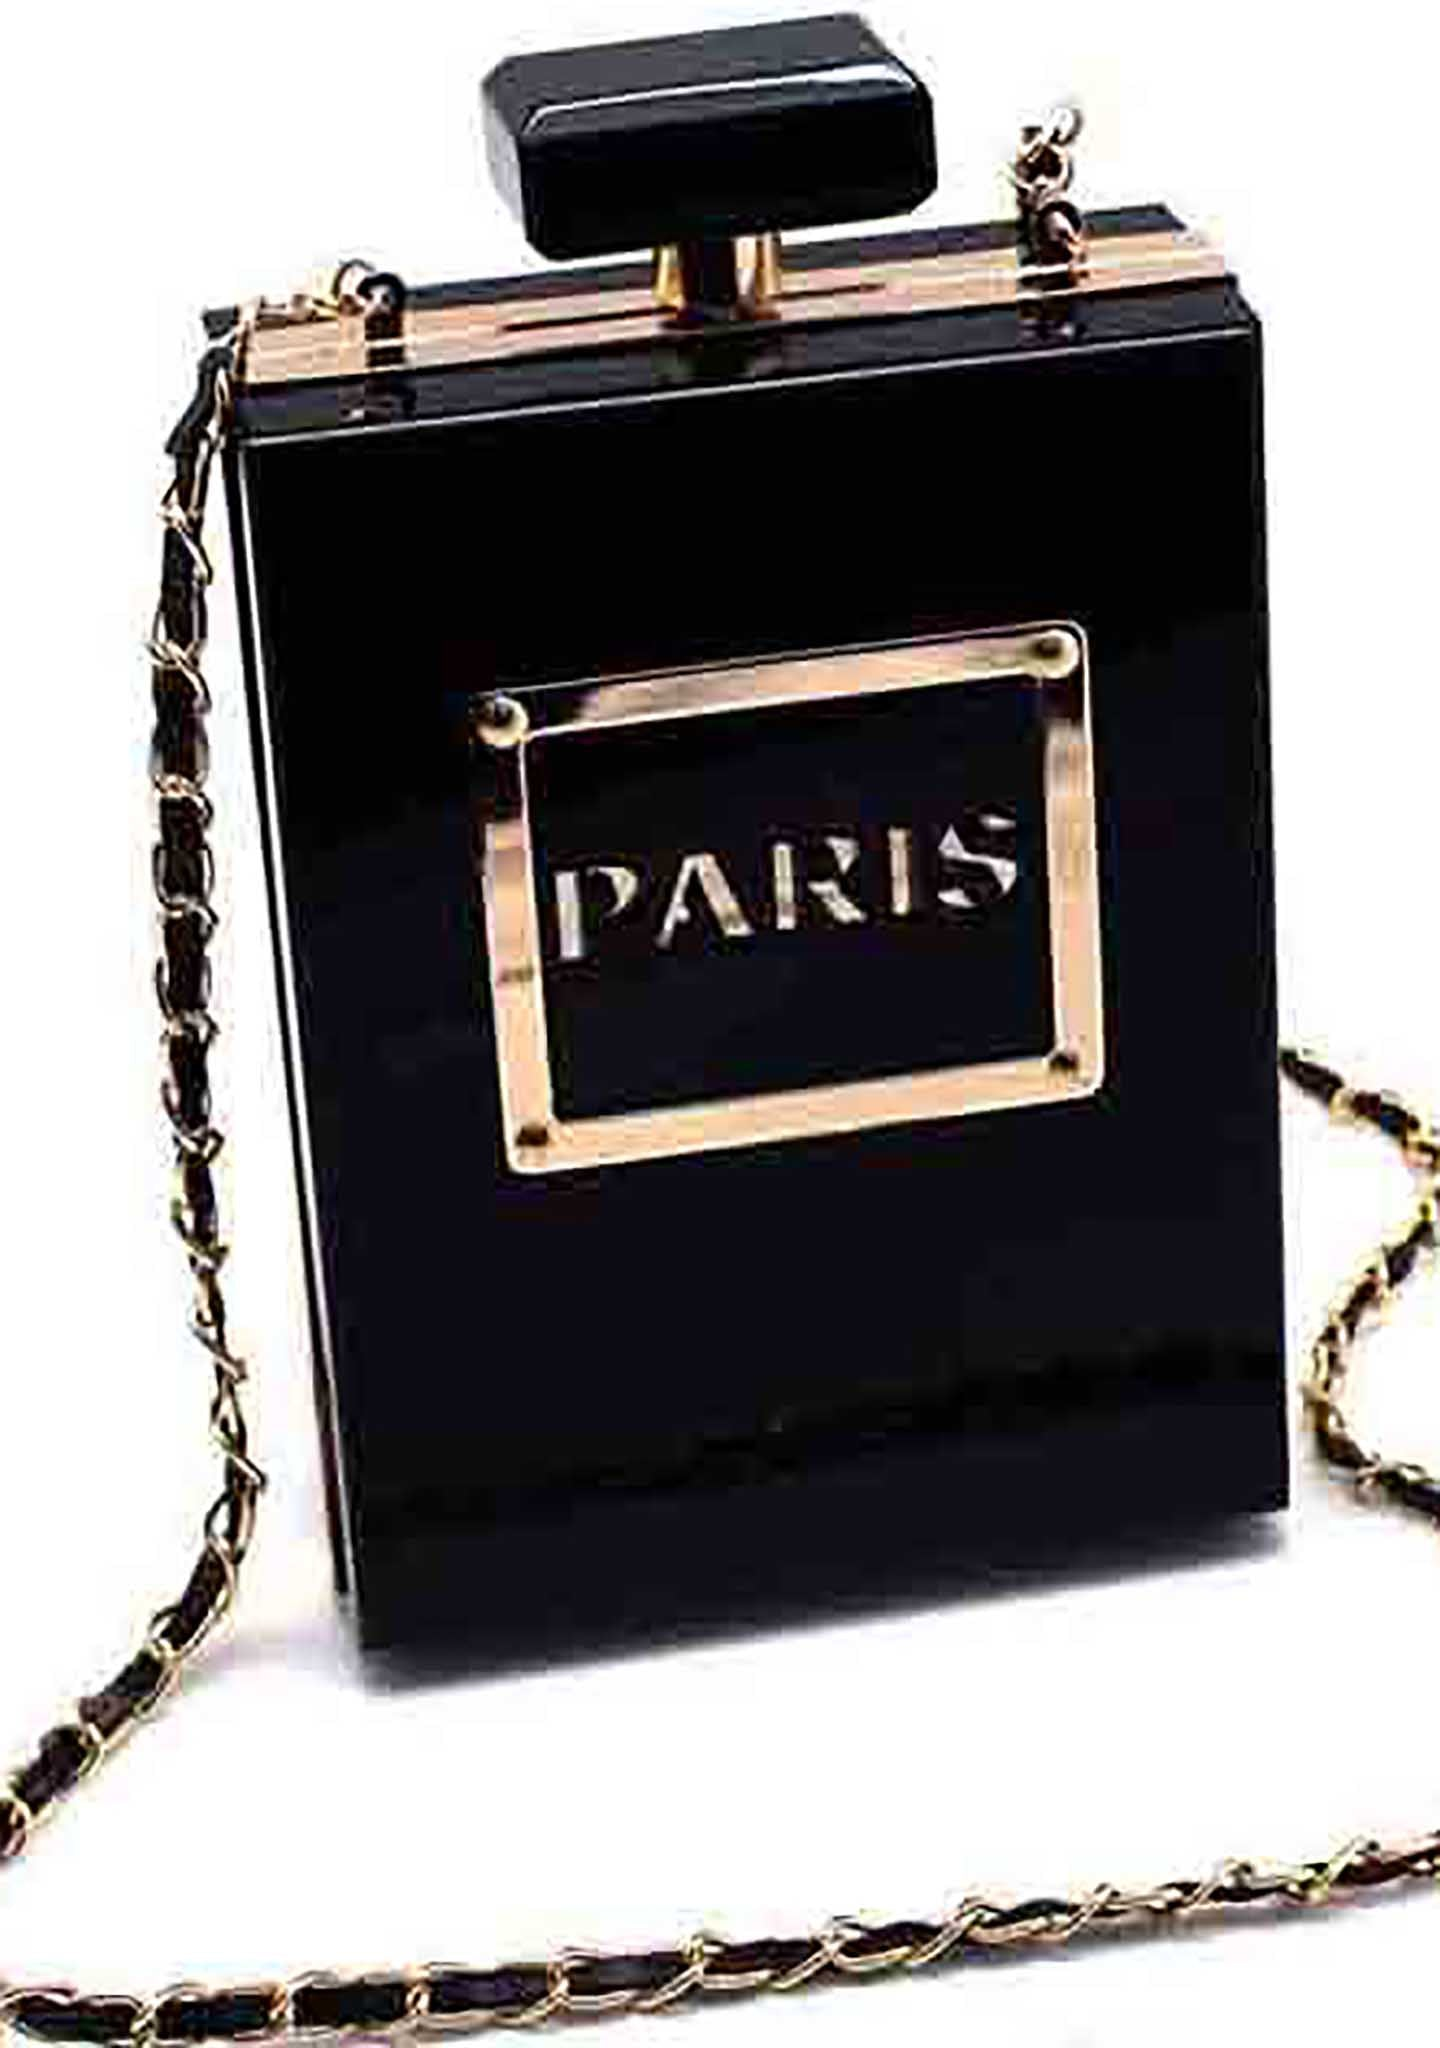 7 LUXE Paris Perfume Crossbody Clutch Bag in Black